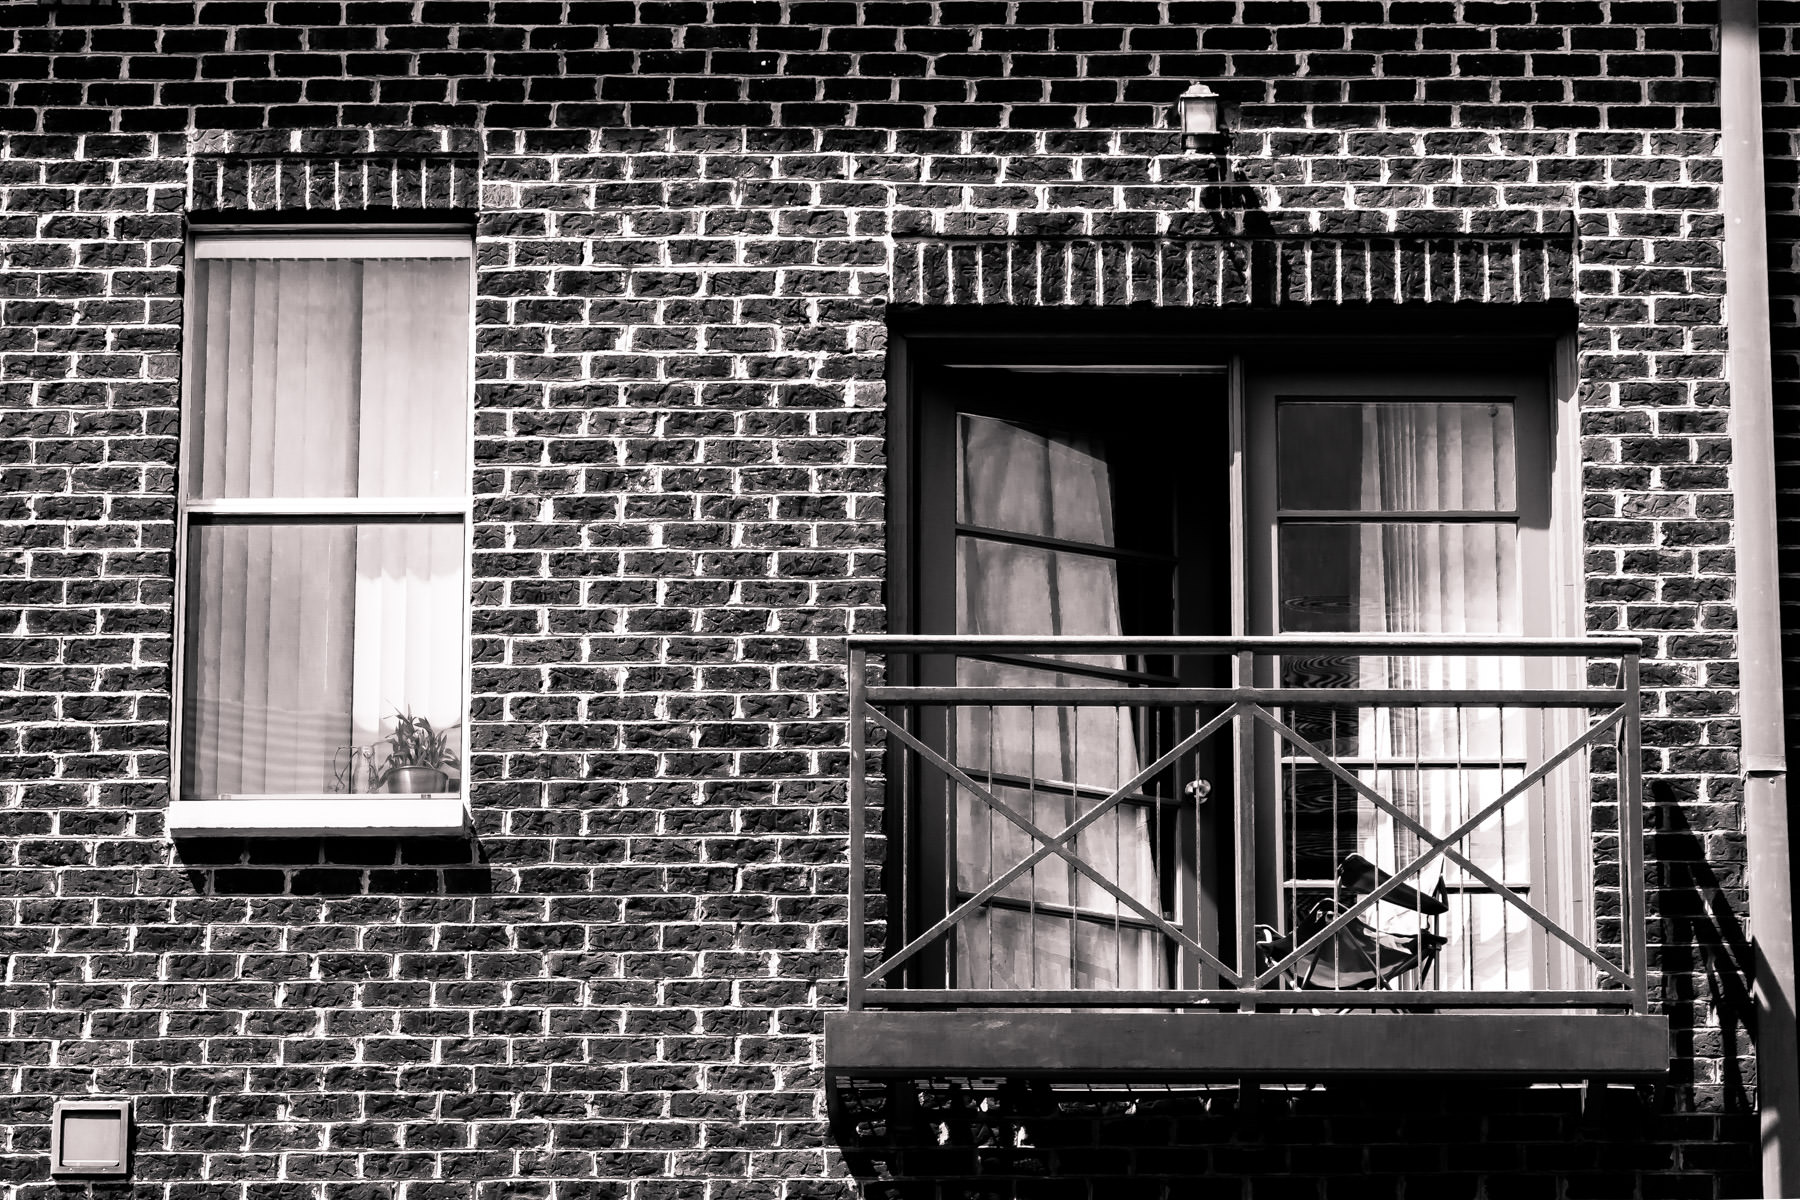 A lonely chair perched on the balcony of an apartment somewhere in the Addison Circle neighborhood of Addison, Texas.